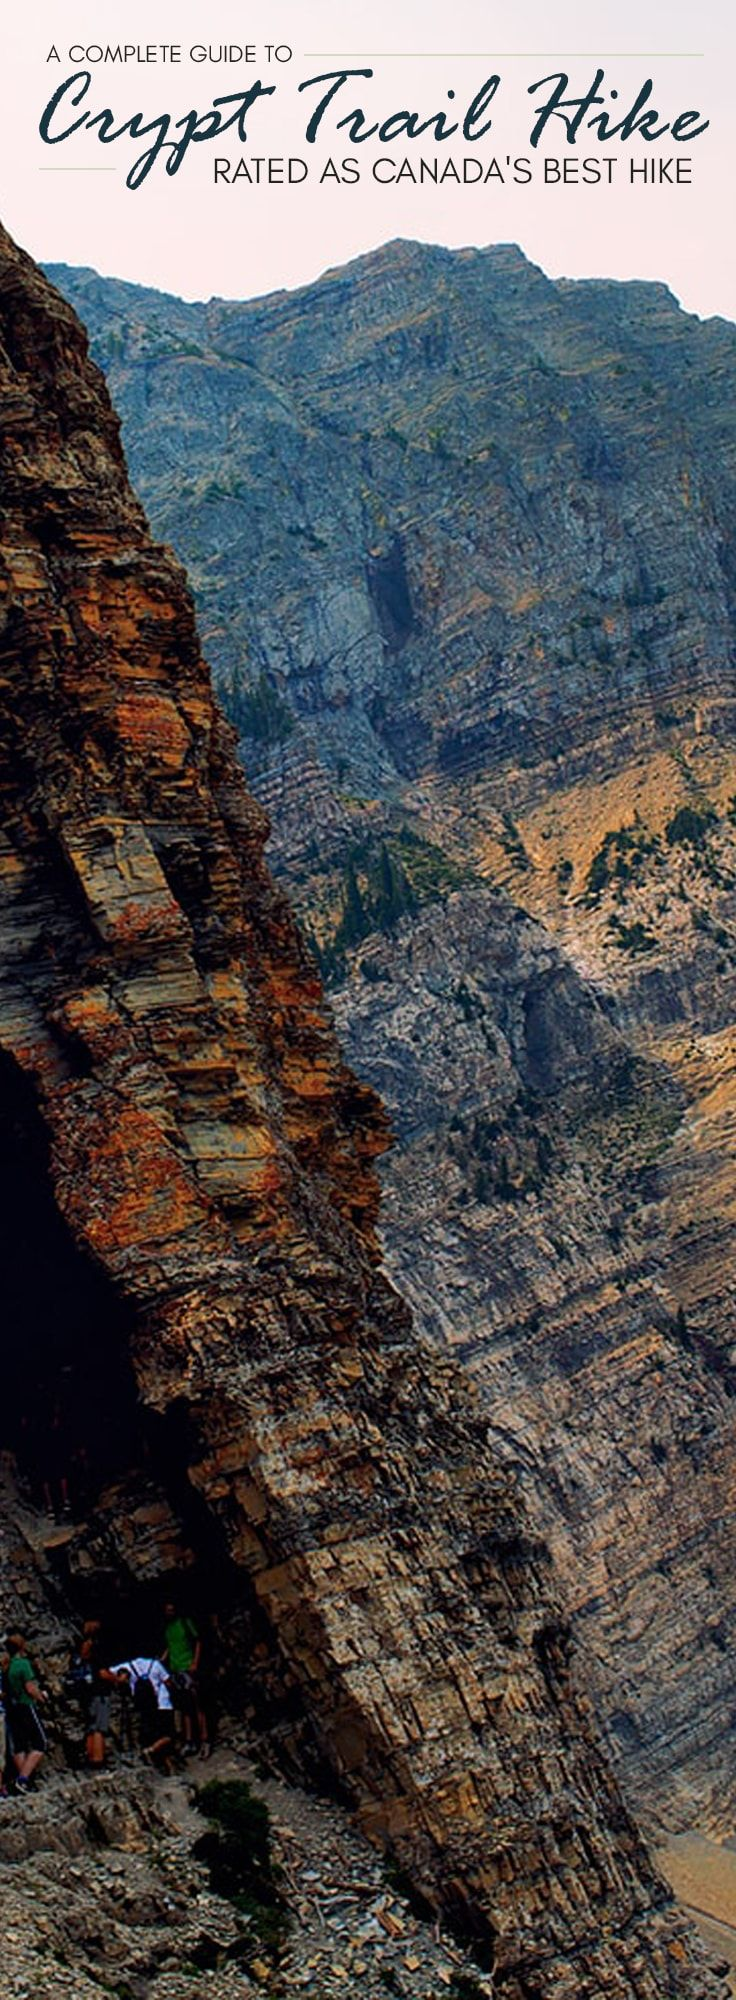 Located in Waterton Lakes National Park, Crypt Lake Trail is one of the world's 20 most thrilling trails as rated by National Geographic.